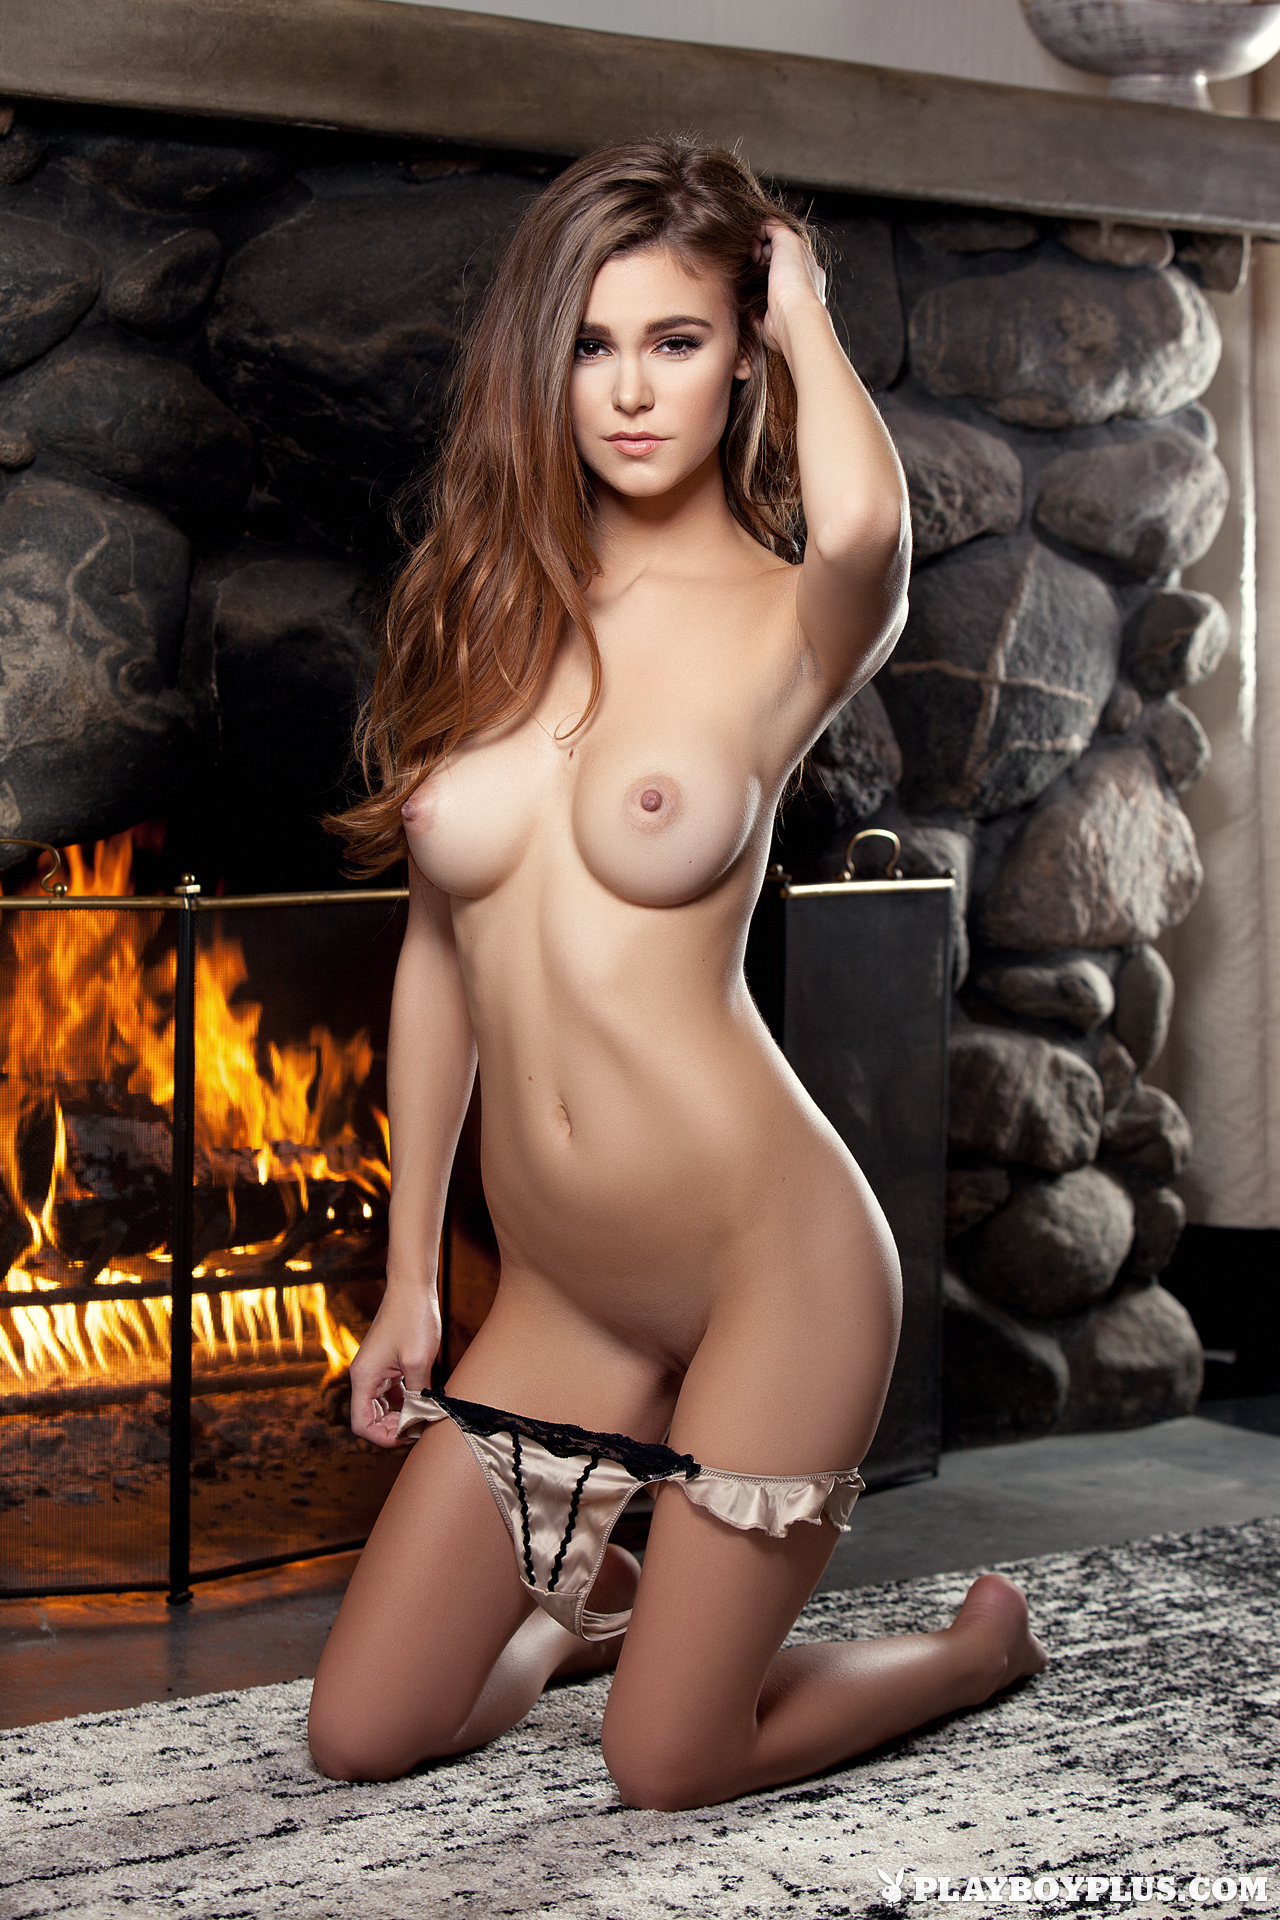 Amberleigh West Sex amberleigh west nude - 174 pictures: rating 9.58/10